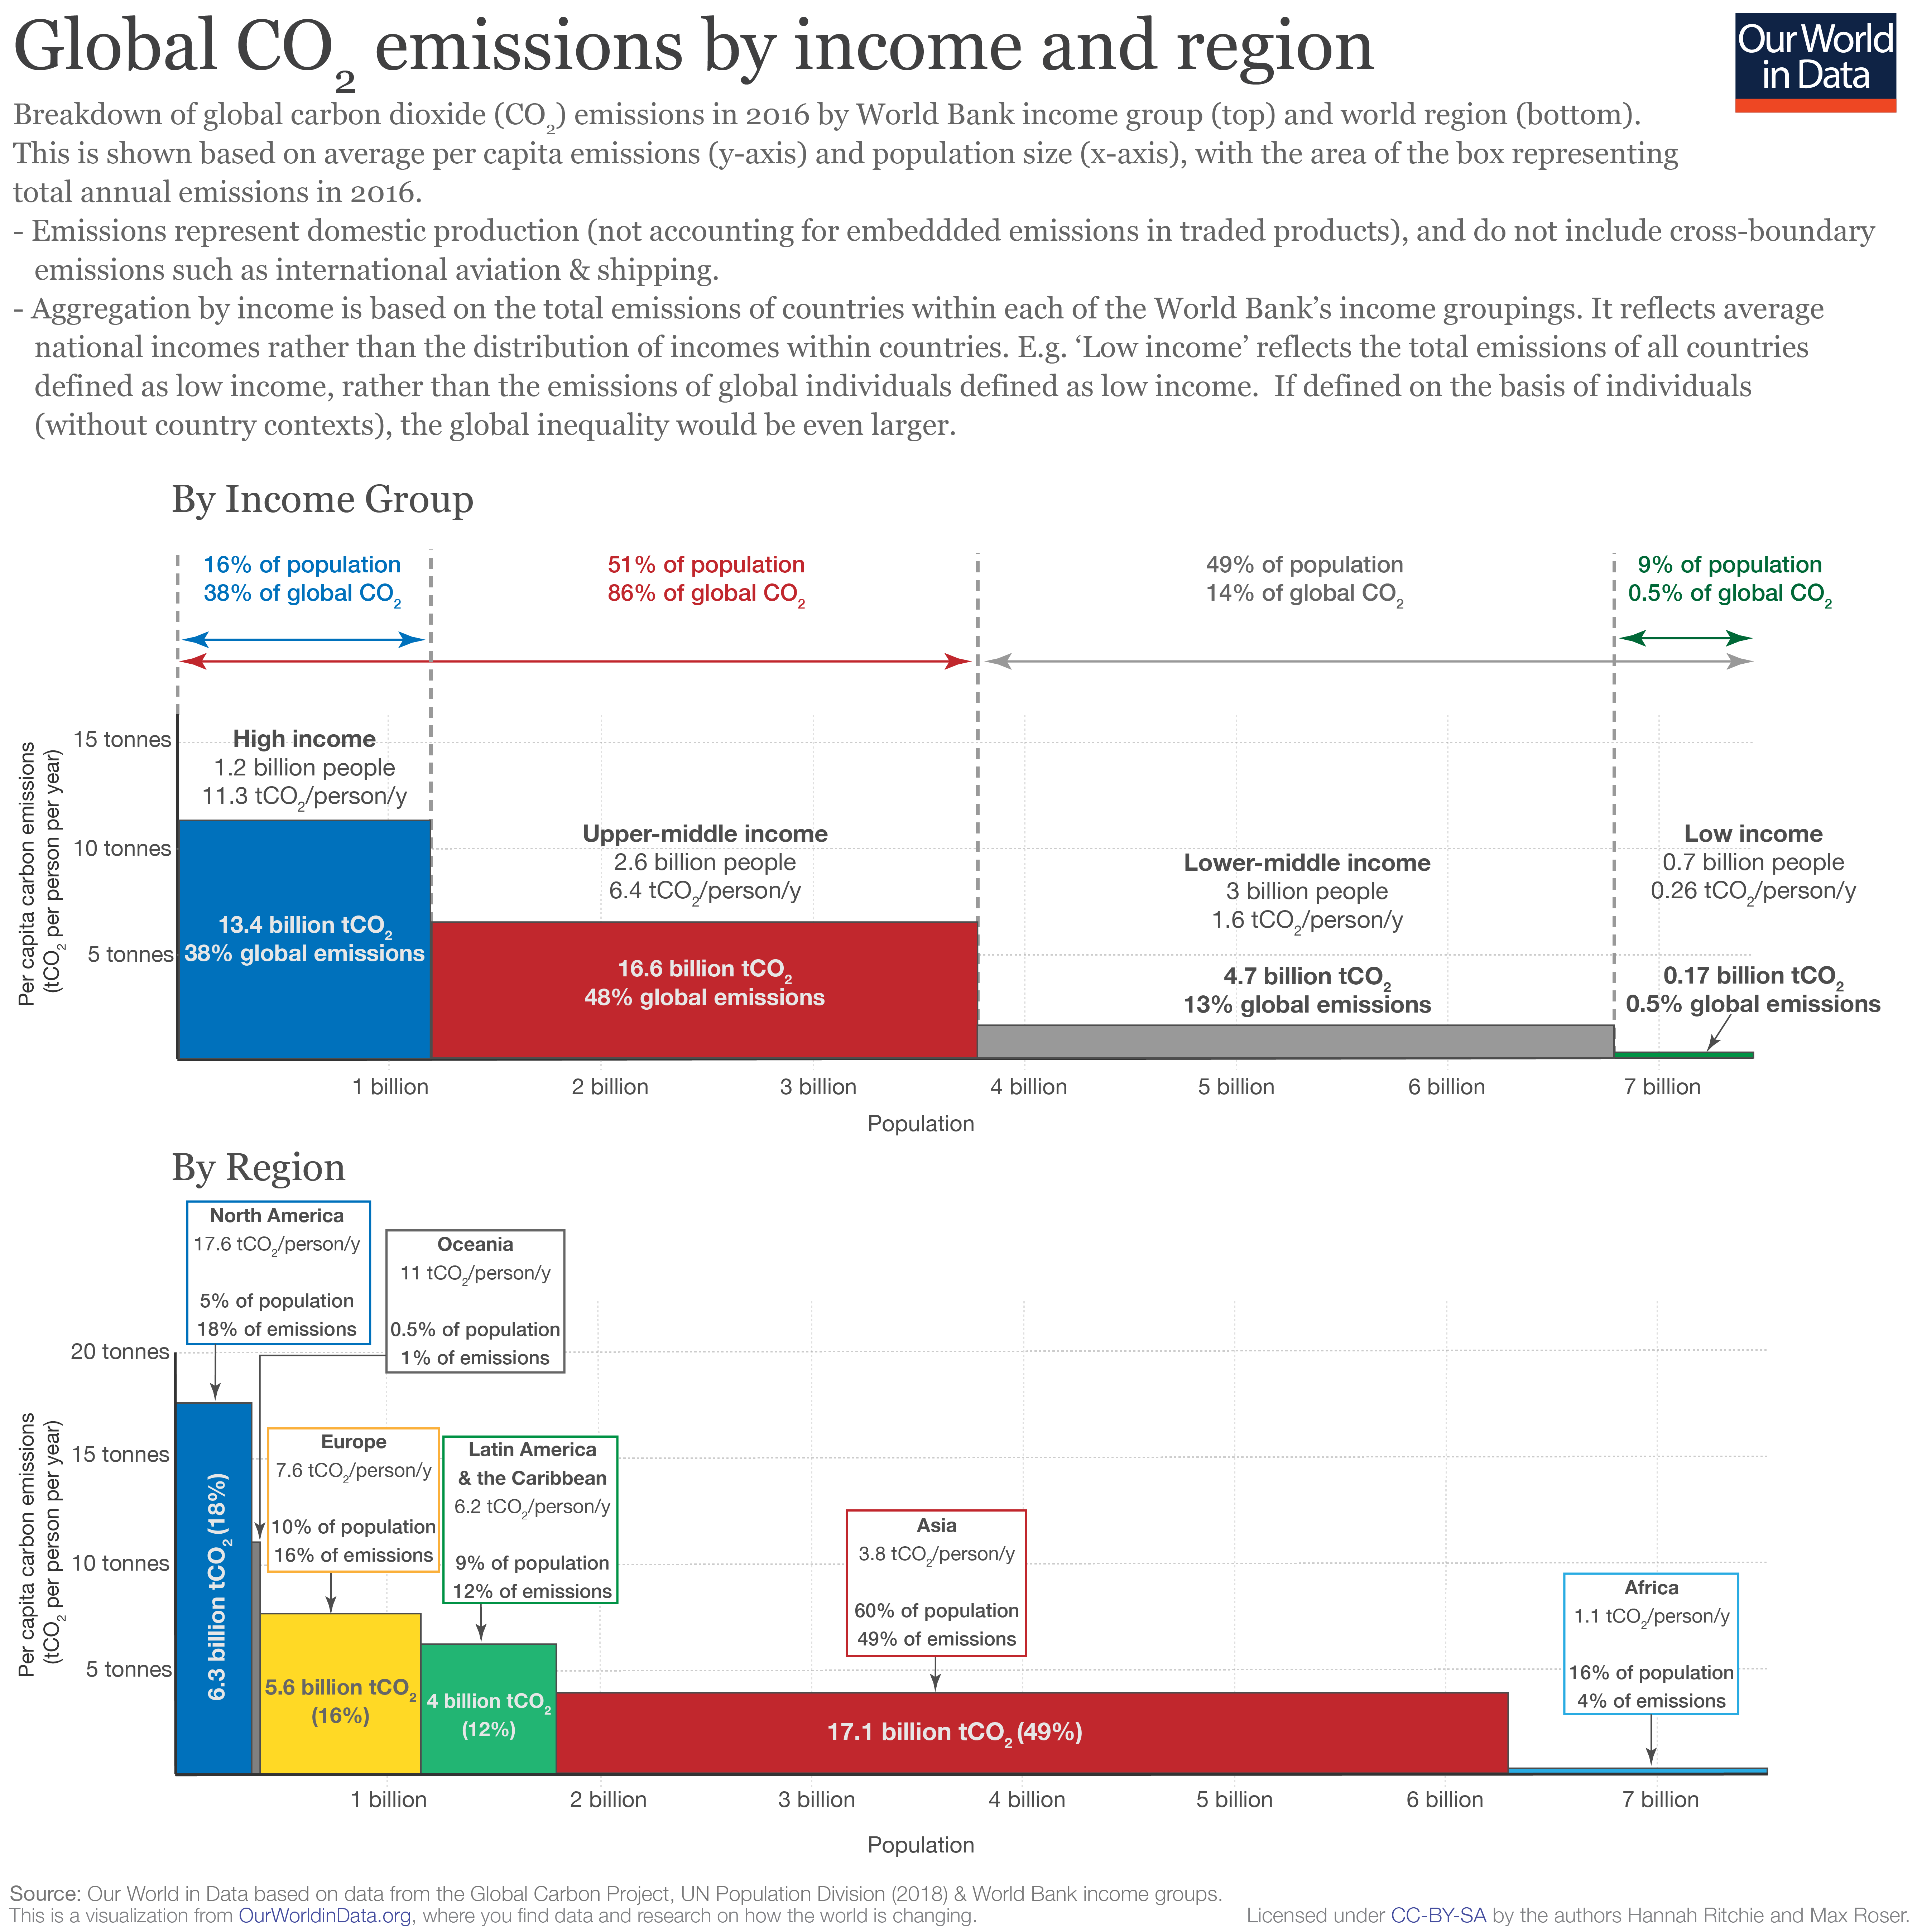 Global inequalities in CO₂ emissions - Our World in Data